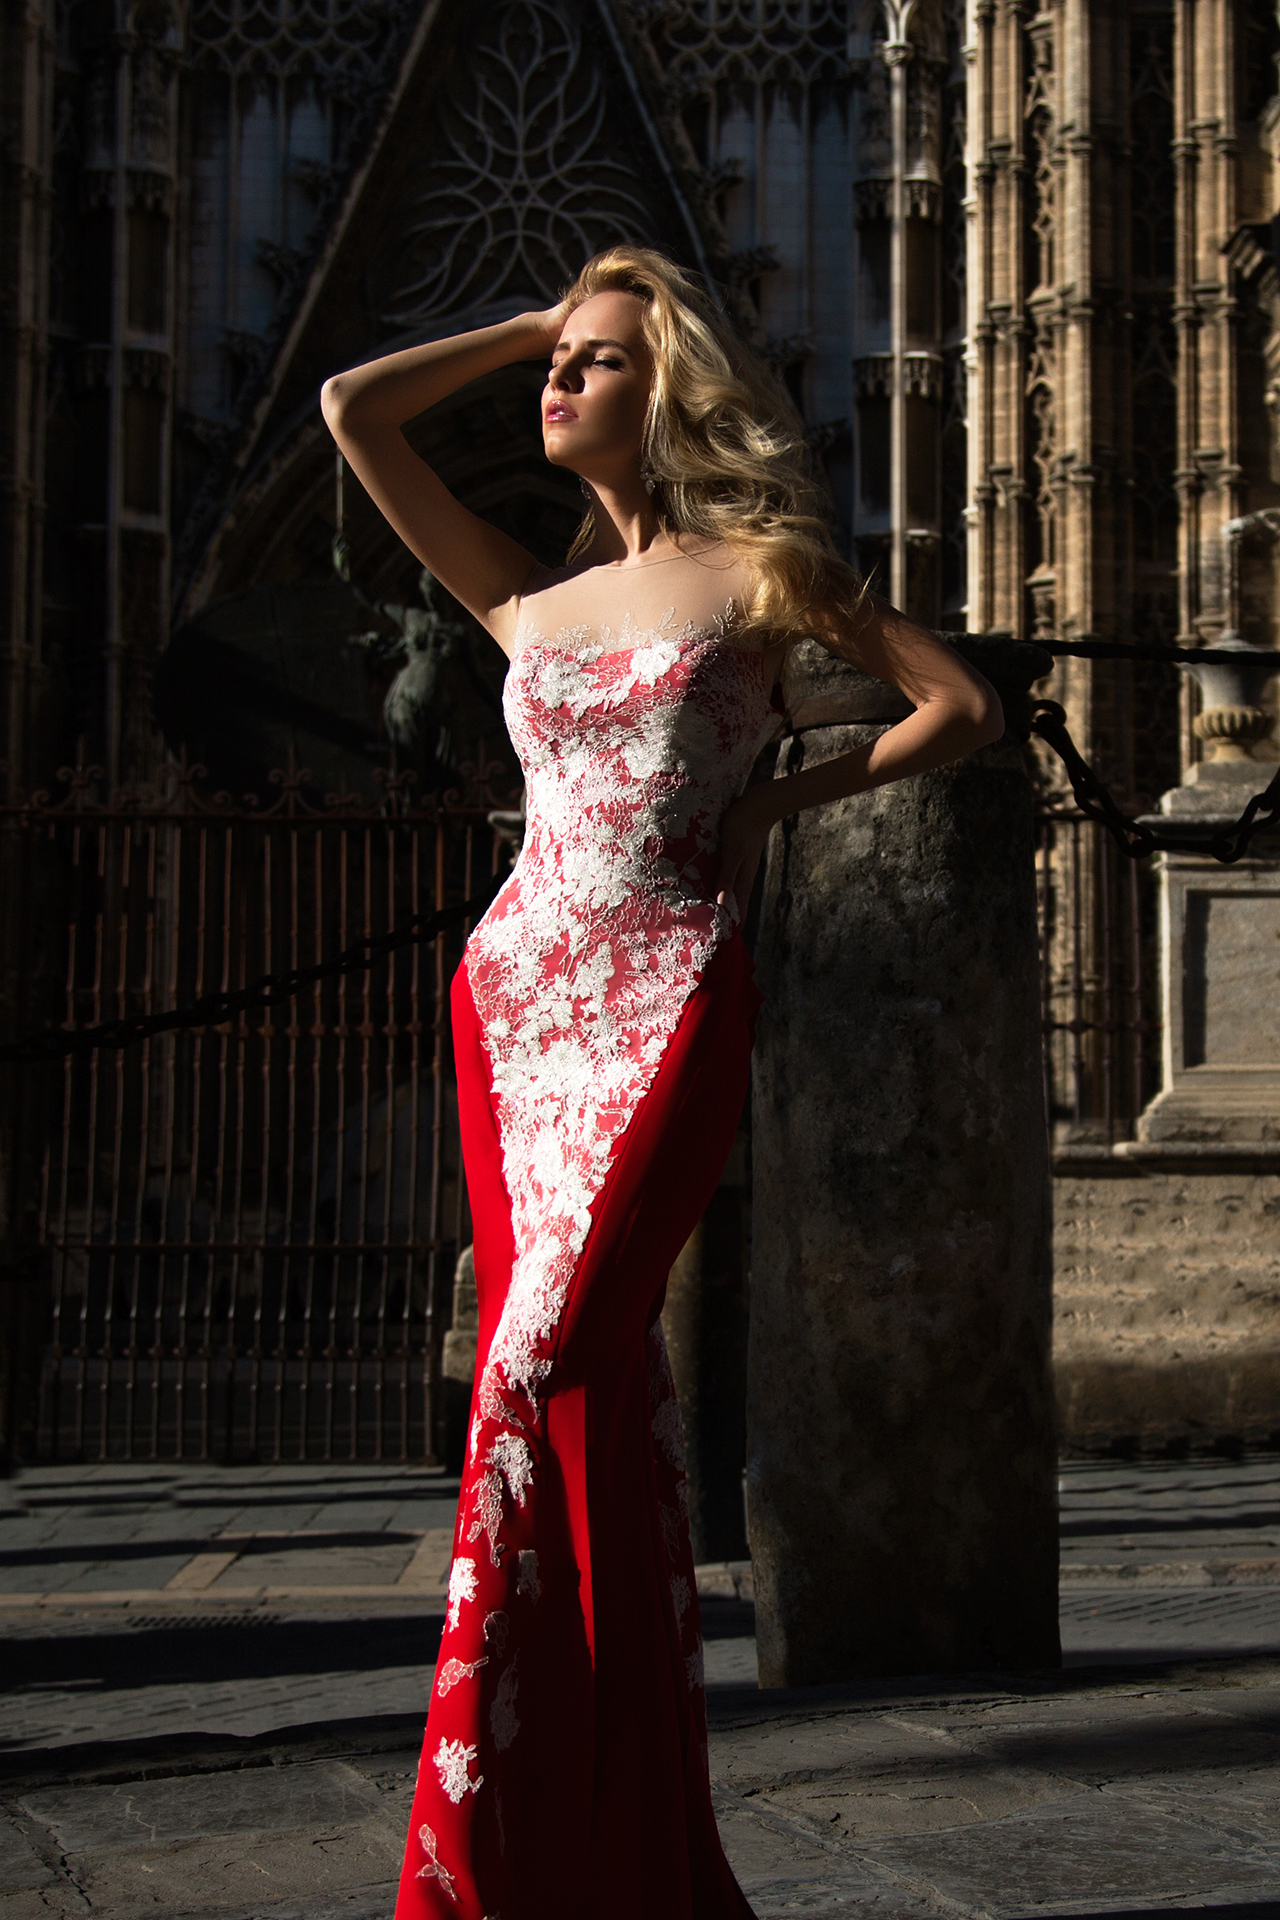 Evening Dresses 922 Silhouette  Fitted  Color  Red  Neckline  Sweetheart  Sleeves  Sleeveless  Illusion Straps  Train  With train